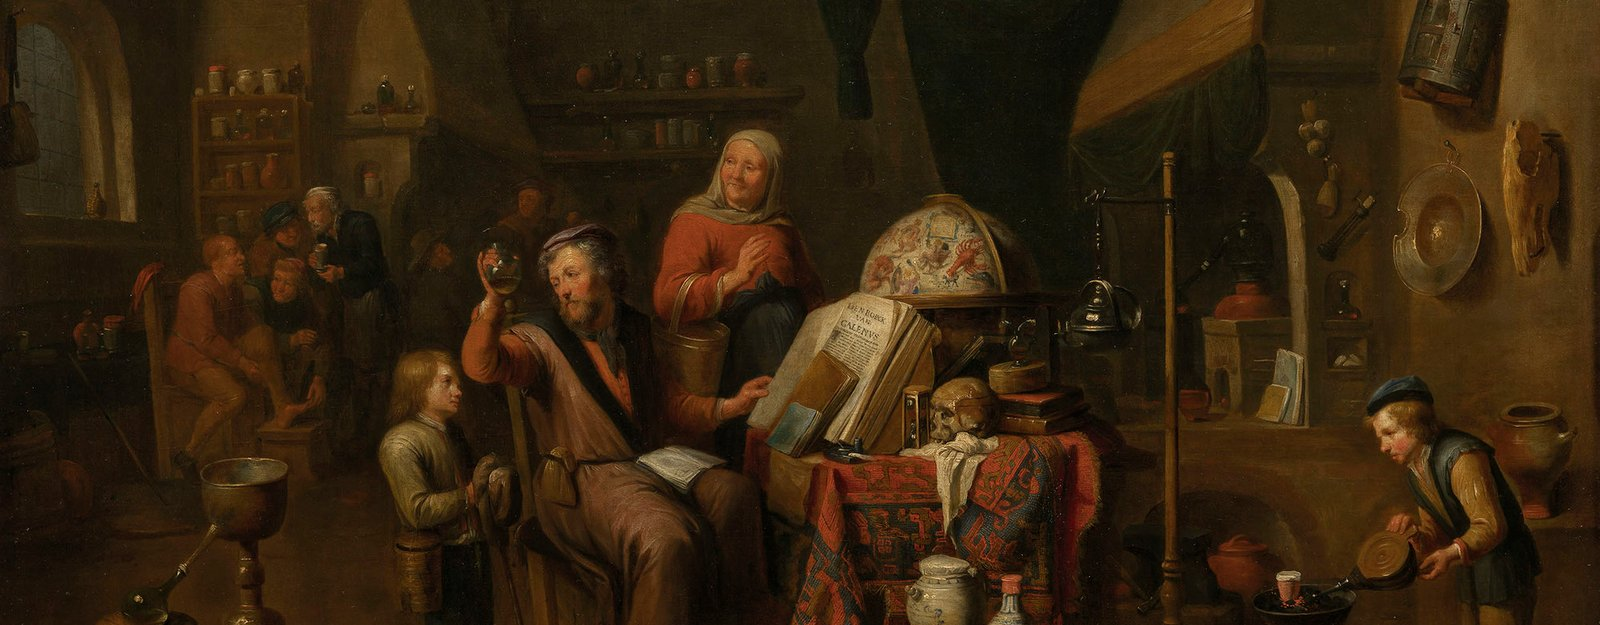 This is one of a pair of paintings (see CWLF 127, 406900) depicting a collector surrounded by his possessions and an physician in his laboratory. Both works consciously perpetuate the tradition of David Teniers, who specialised in alchemists and collector